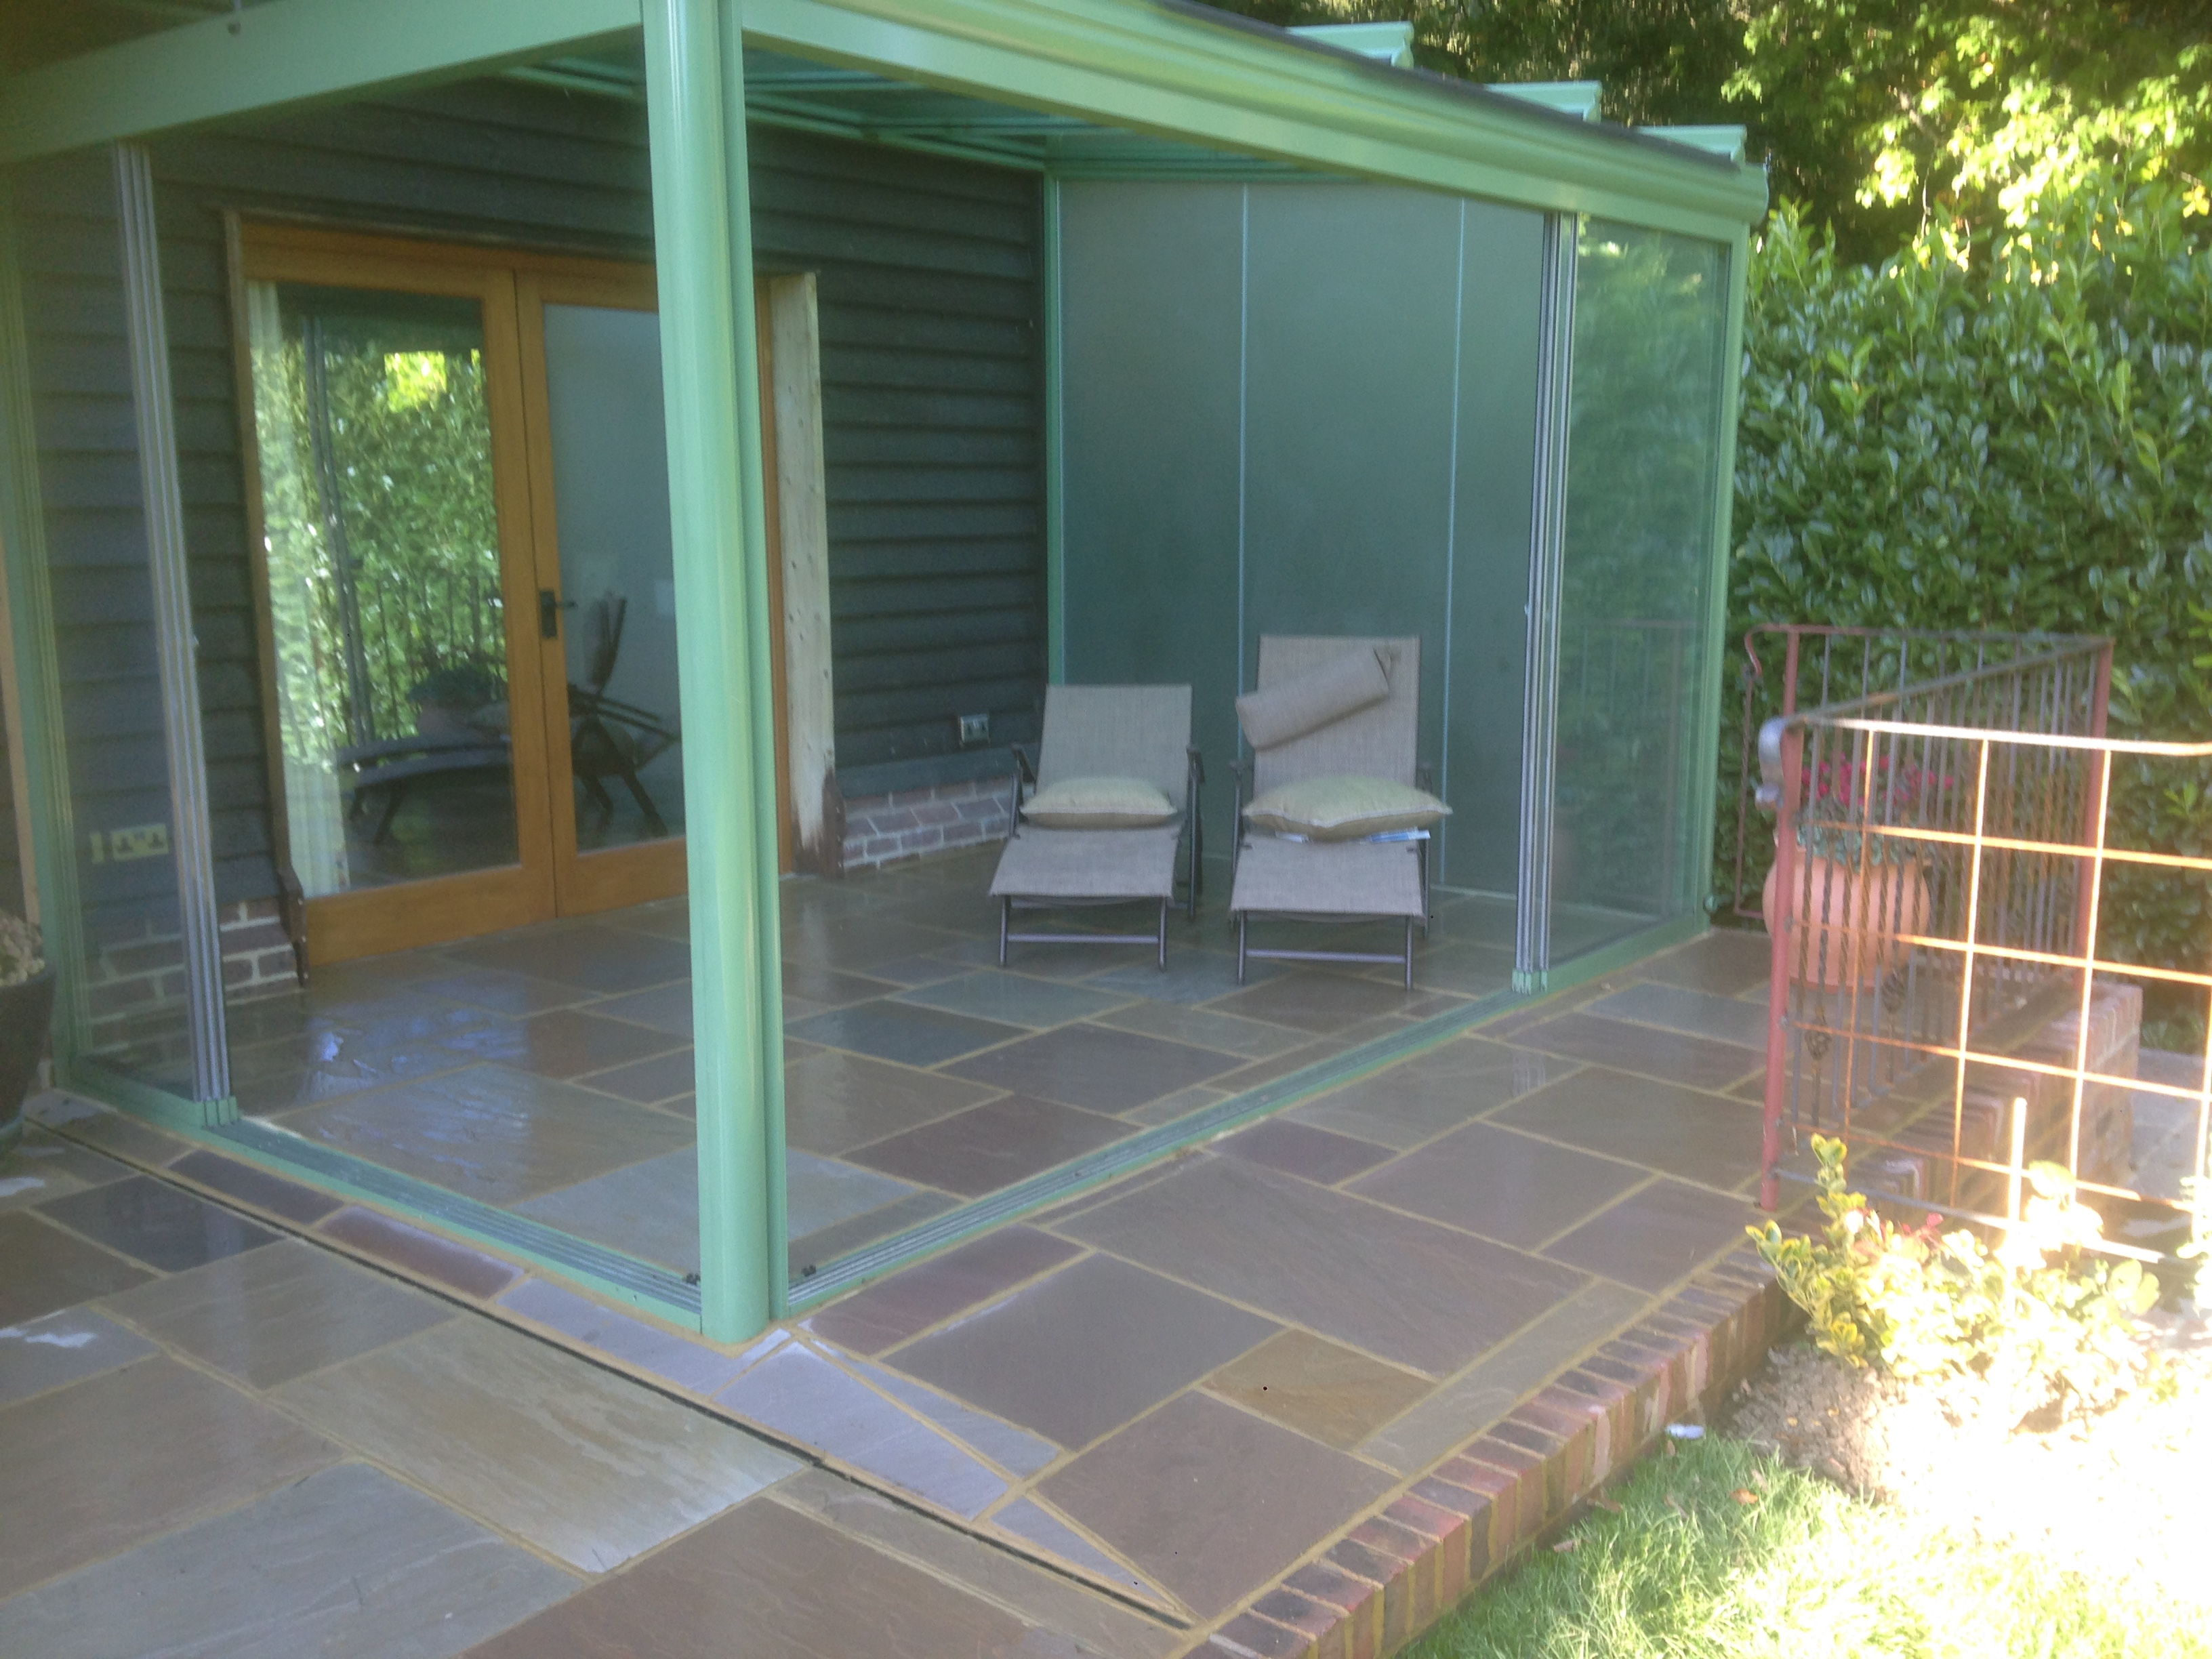 Sheltered Patio in the horsham area